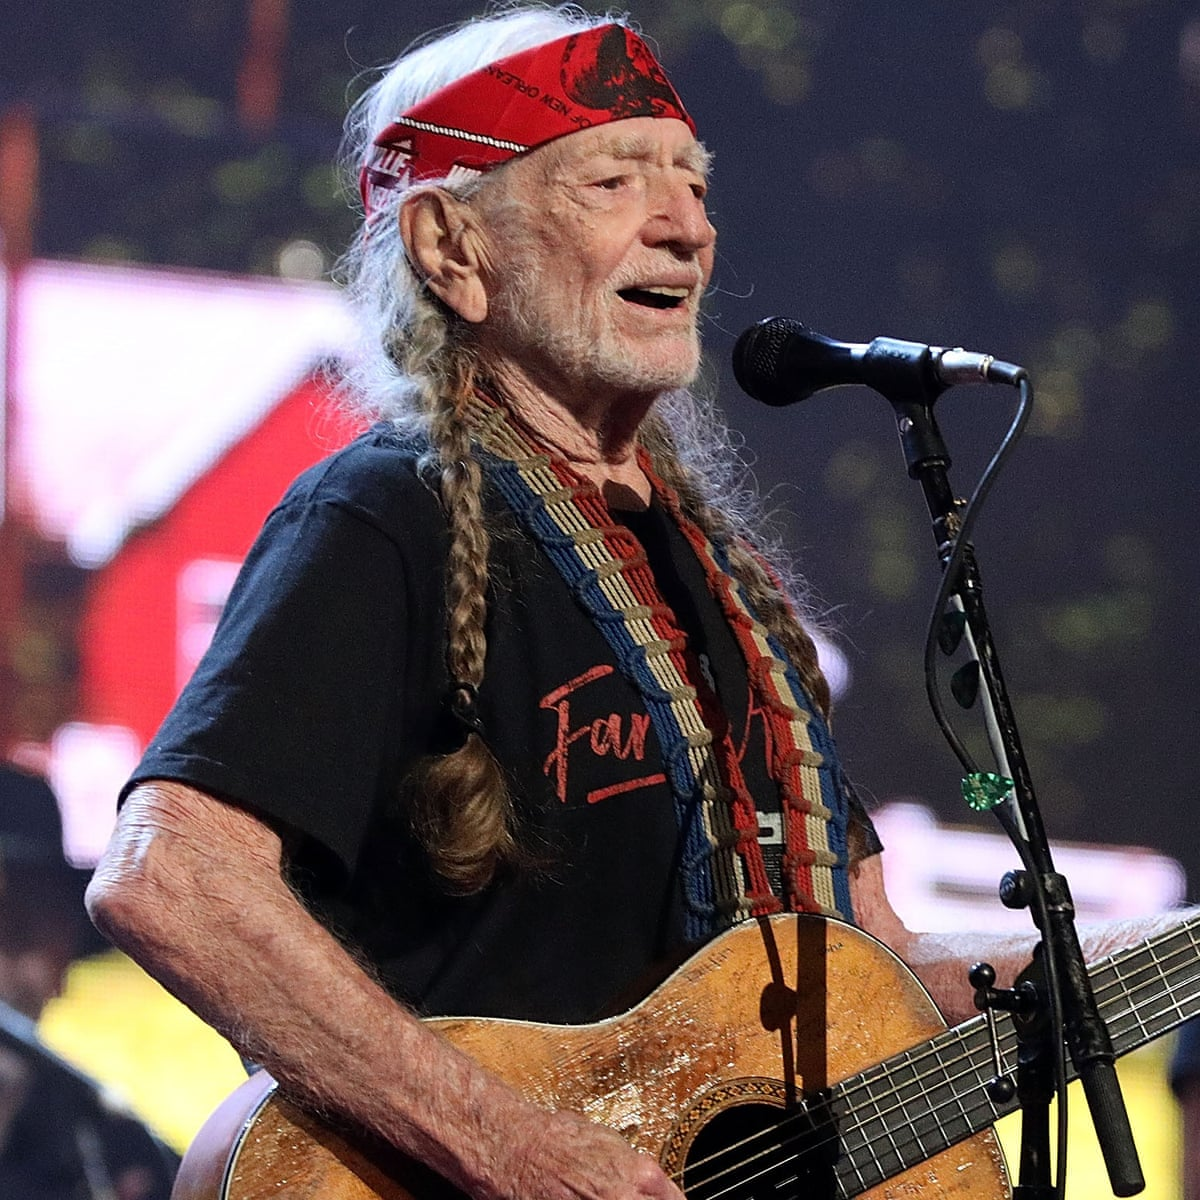 Willie Nelson struggling with health issues And fighting with his wife!